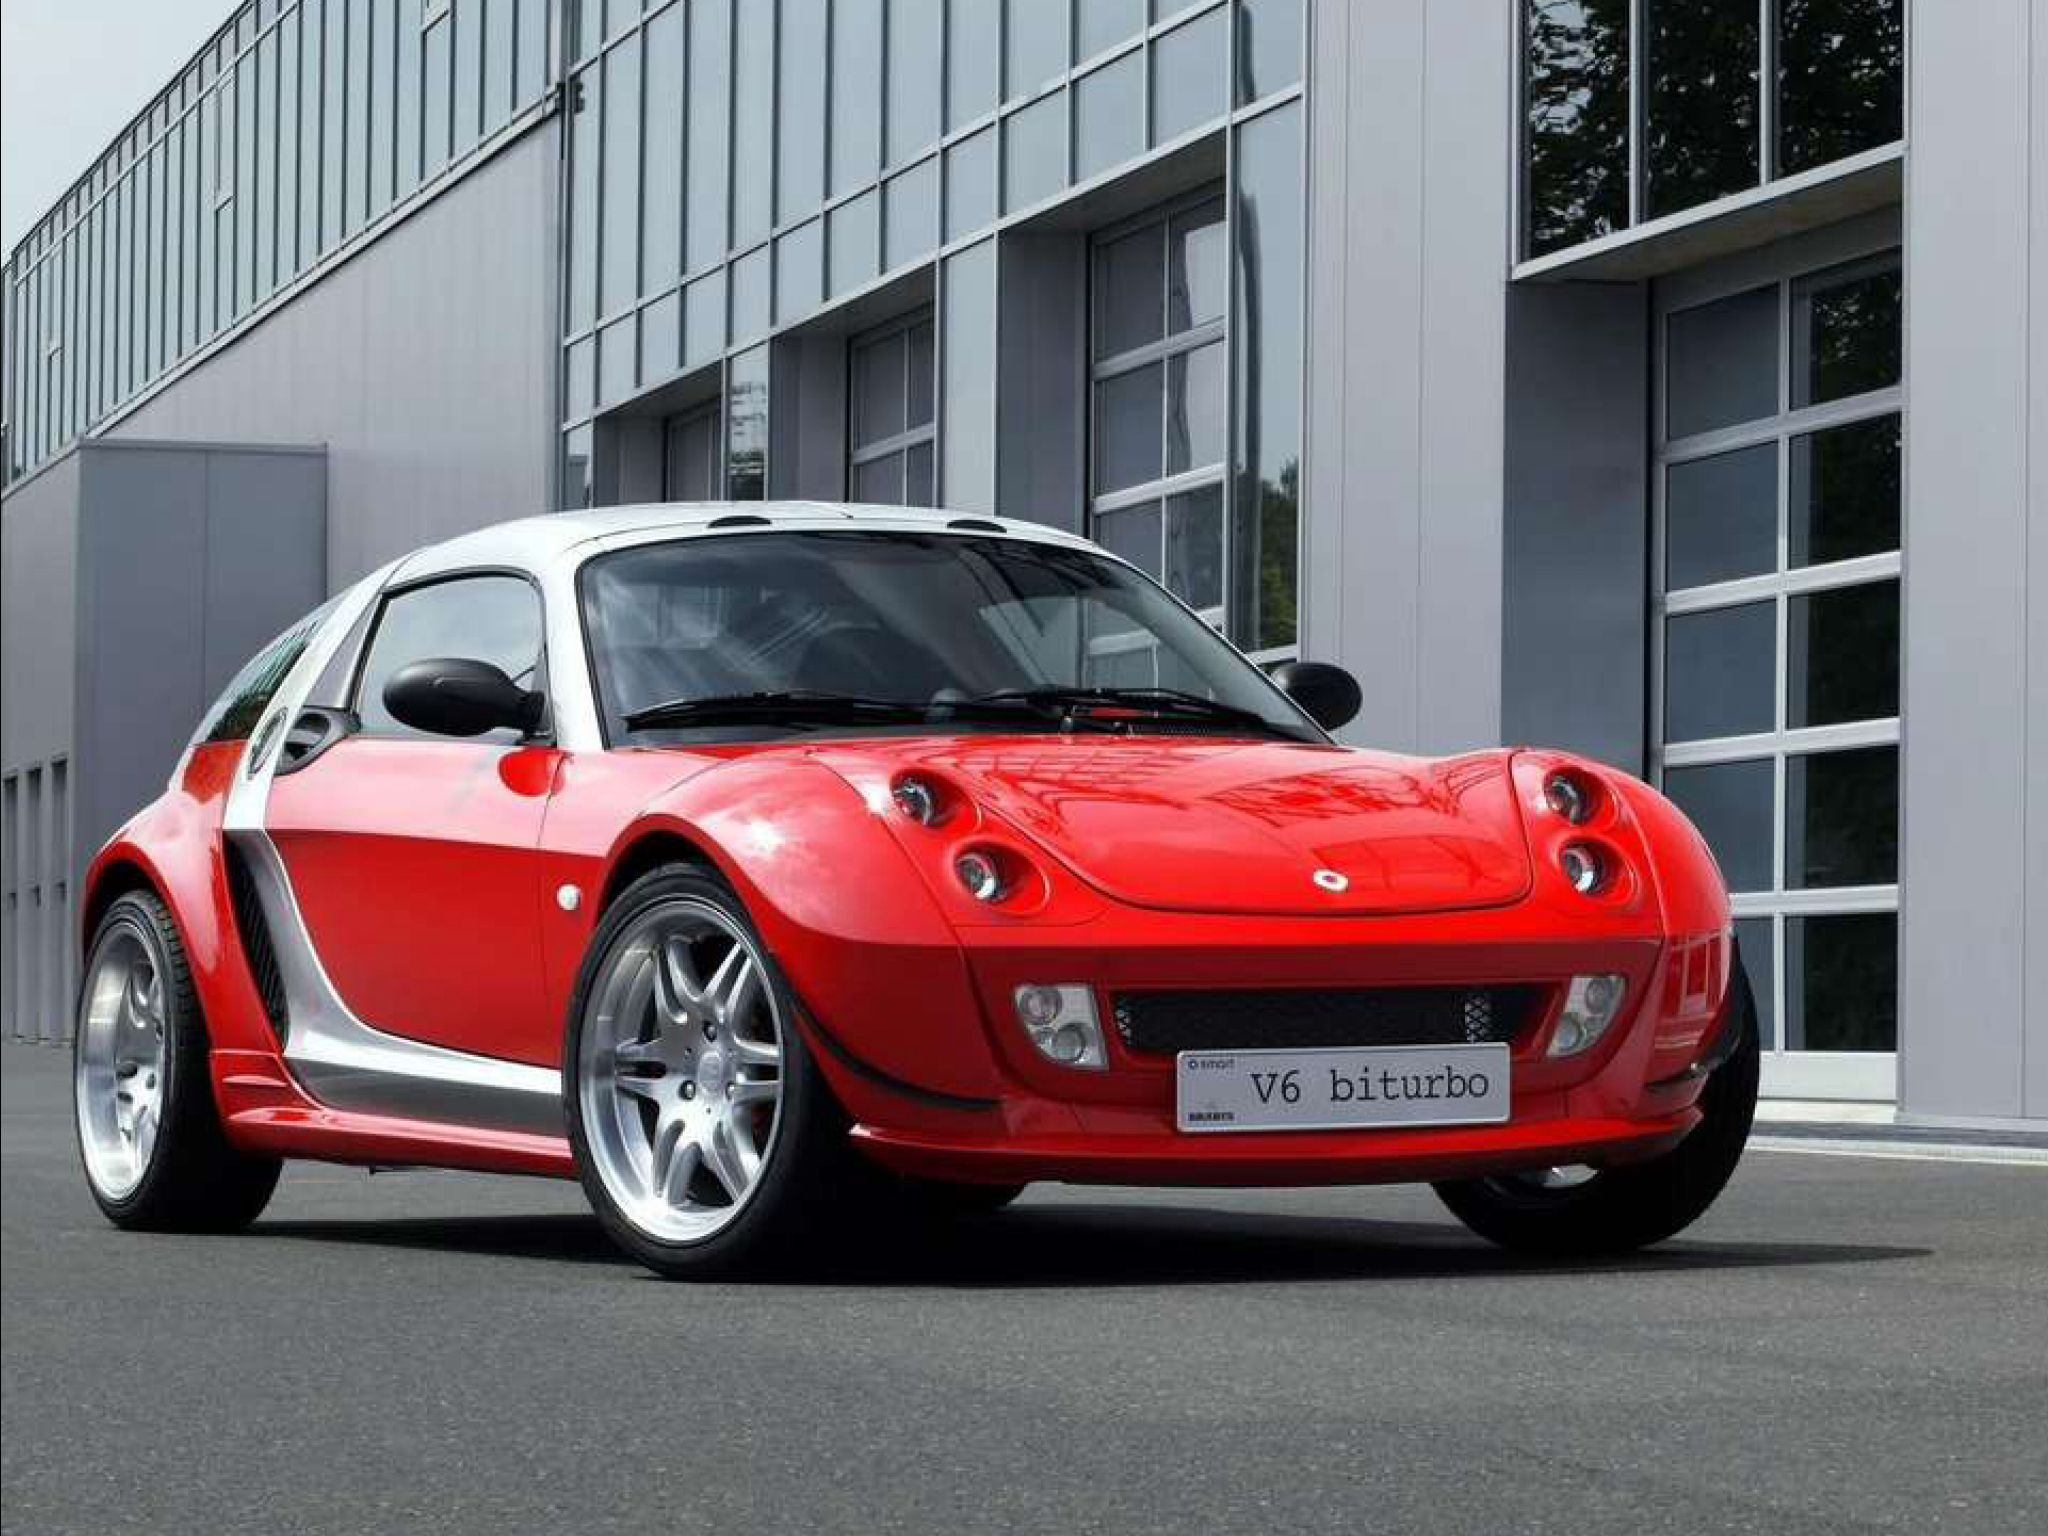 Smart roadster coup ultimate 04 jpg 1 600 1 200 pixels haynes roadster ideas pinterest smart roadster smart roadster coupe and coupe